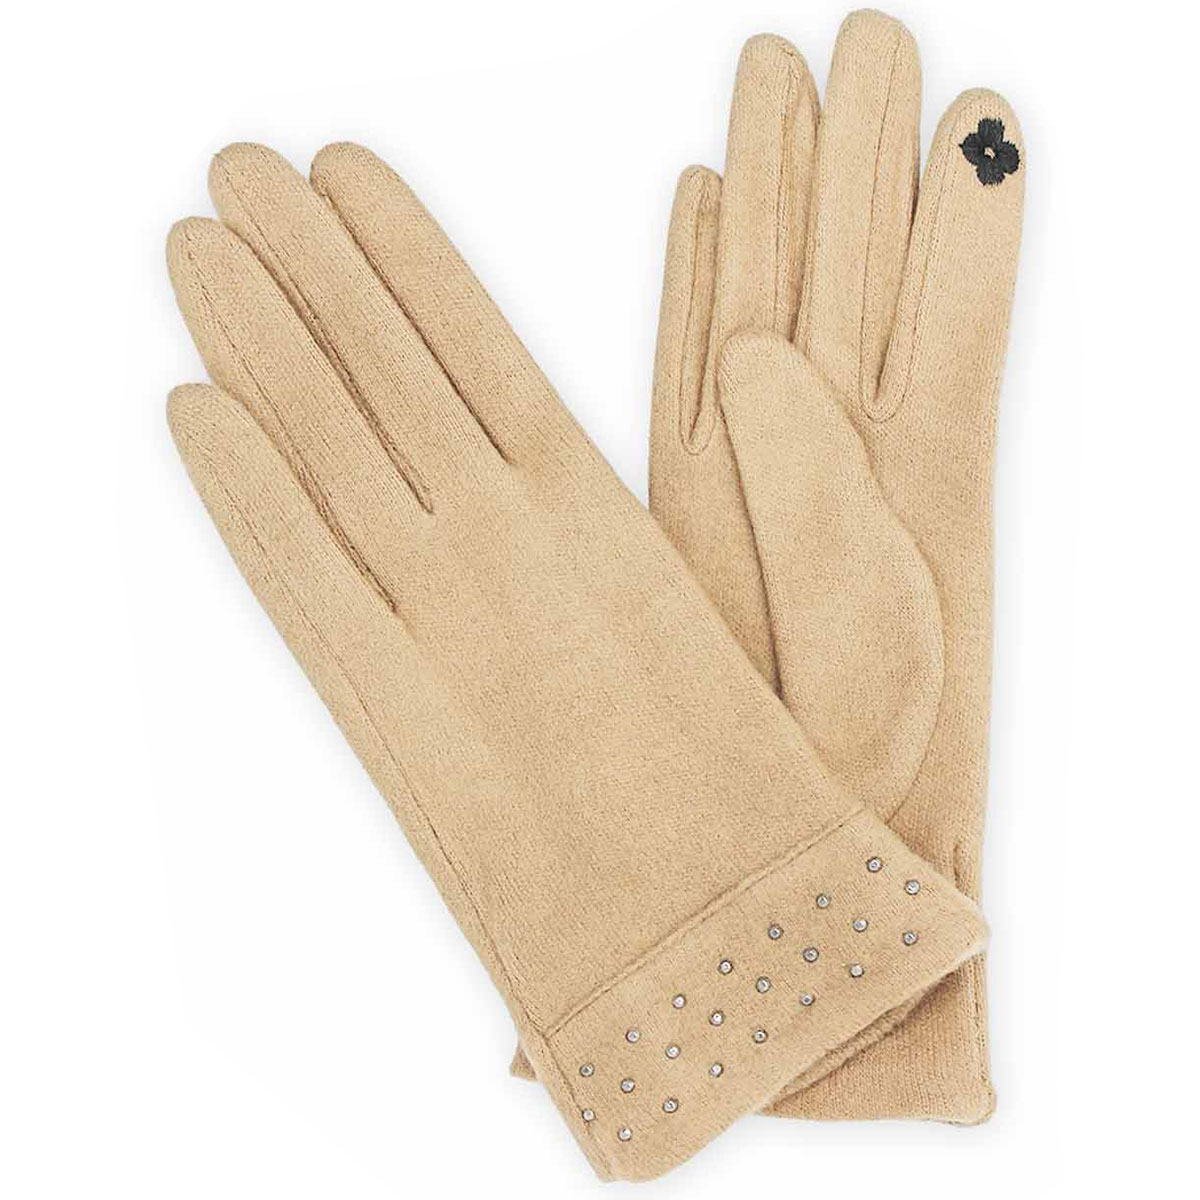 Touch Screen Smart Gloves - Fleece Lined  9829 - Black Quilted w/Button -